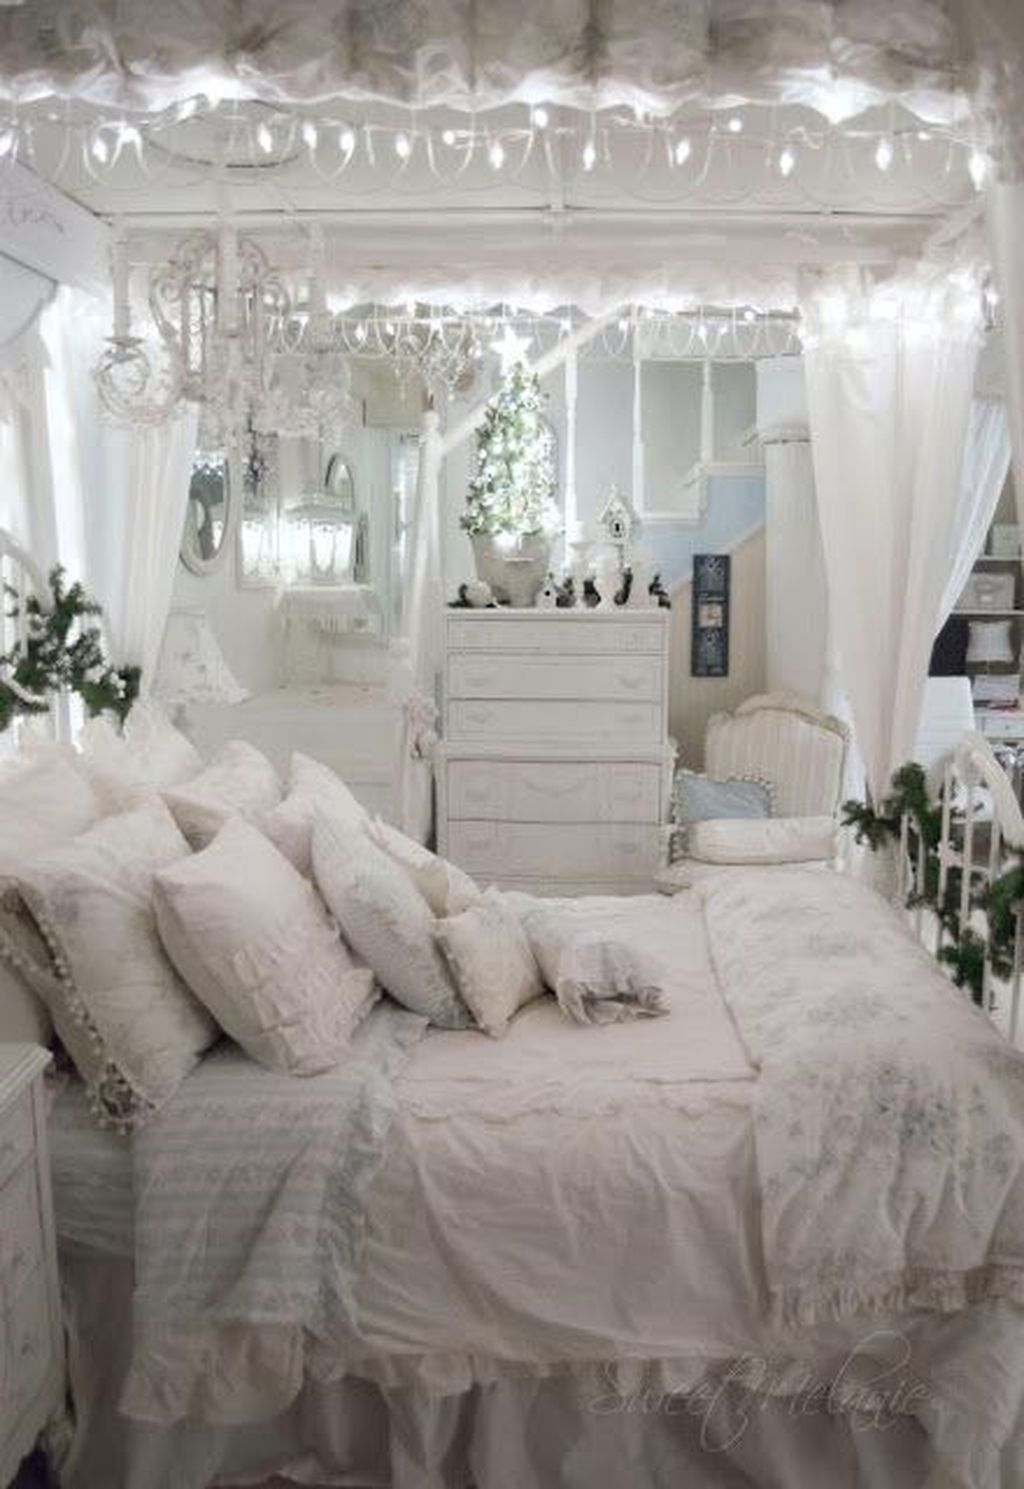 Chambre Style Shabby Chic 35 cozy shabby chic bedroom ideas | shabby chic moderne